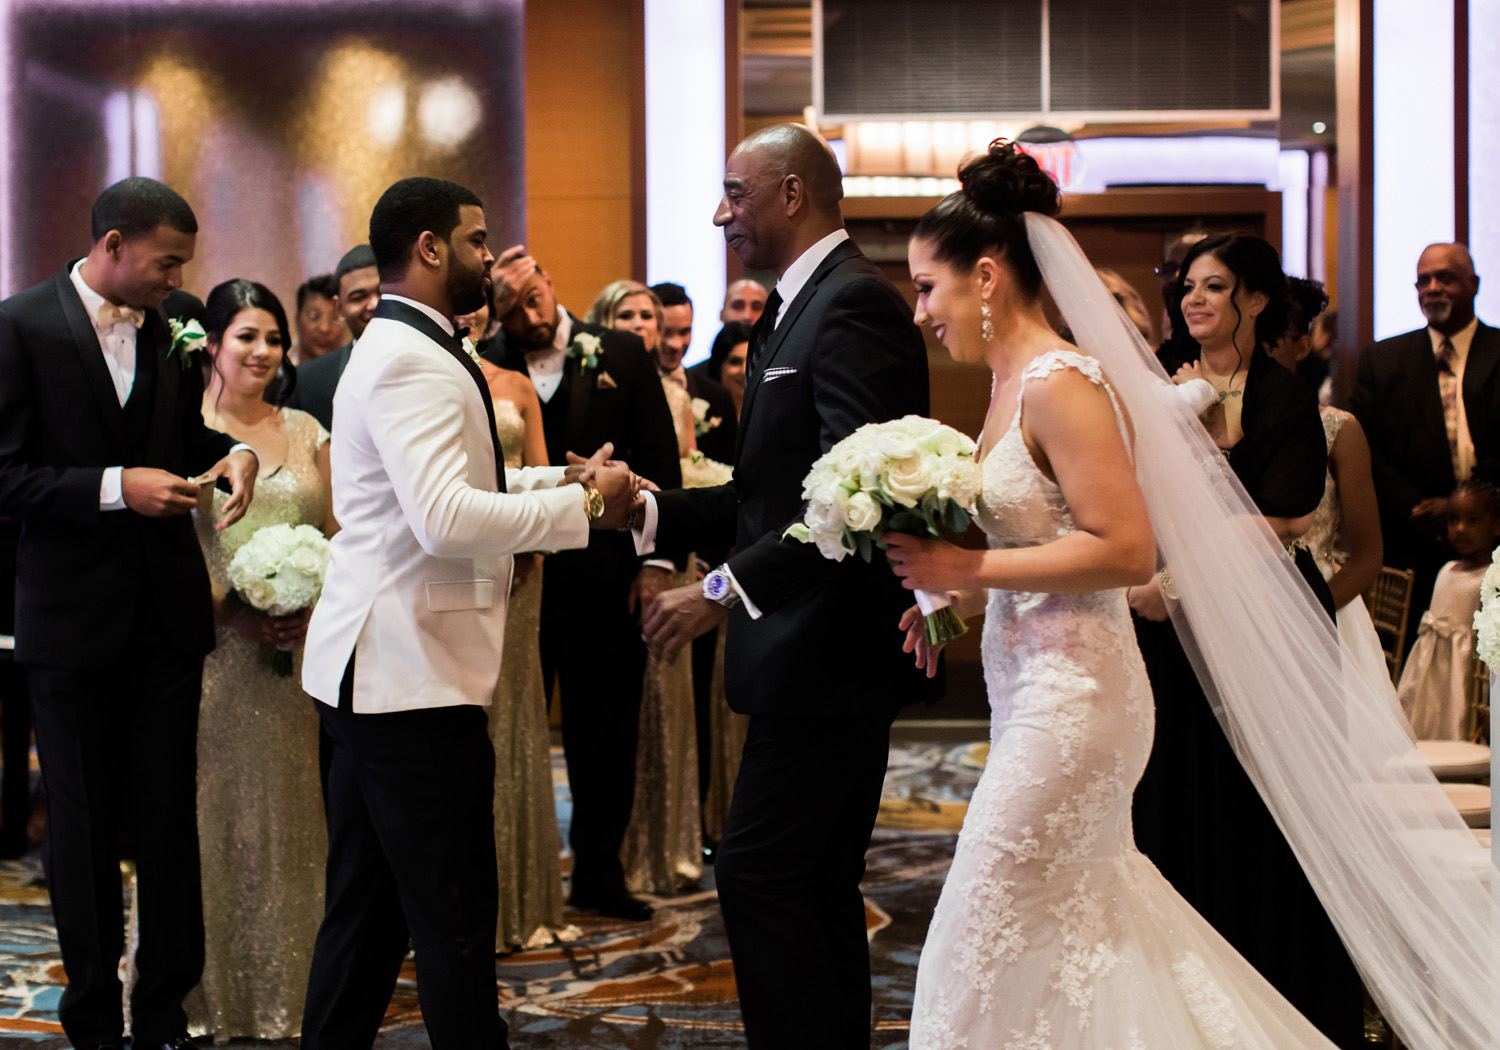 bellevue club seattle wedding ceremony bride and groom.jpg